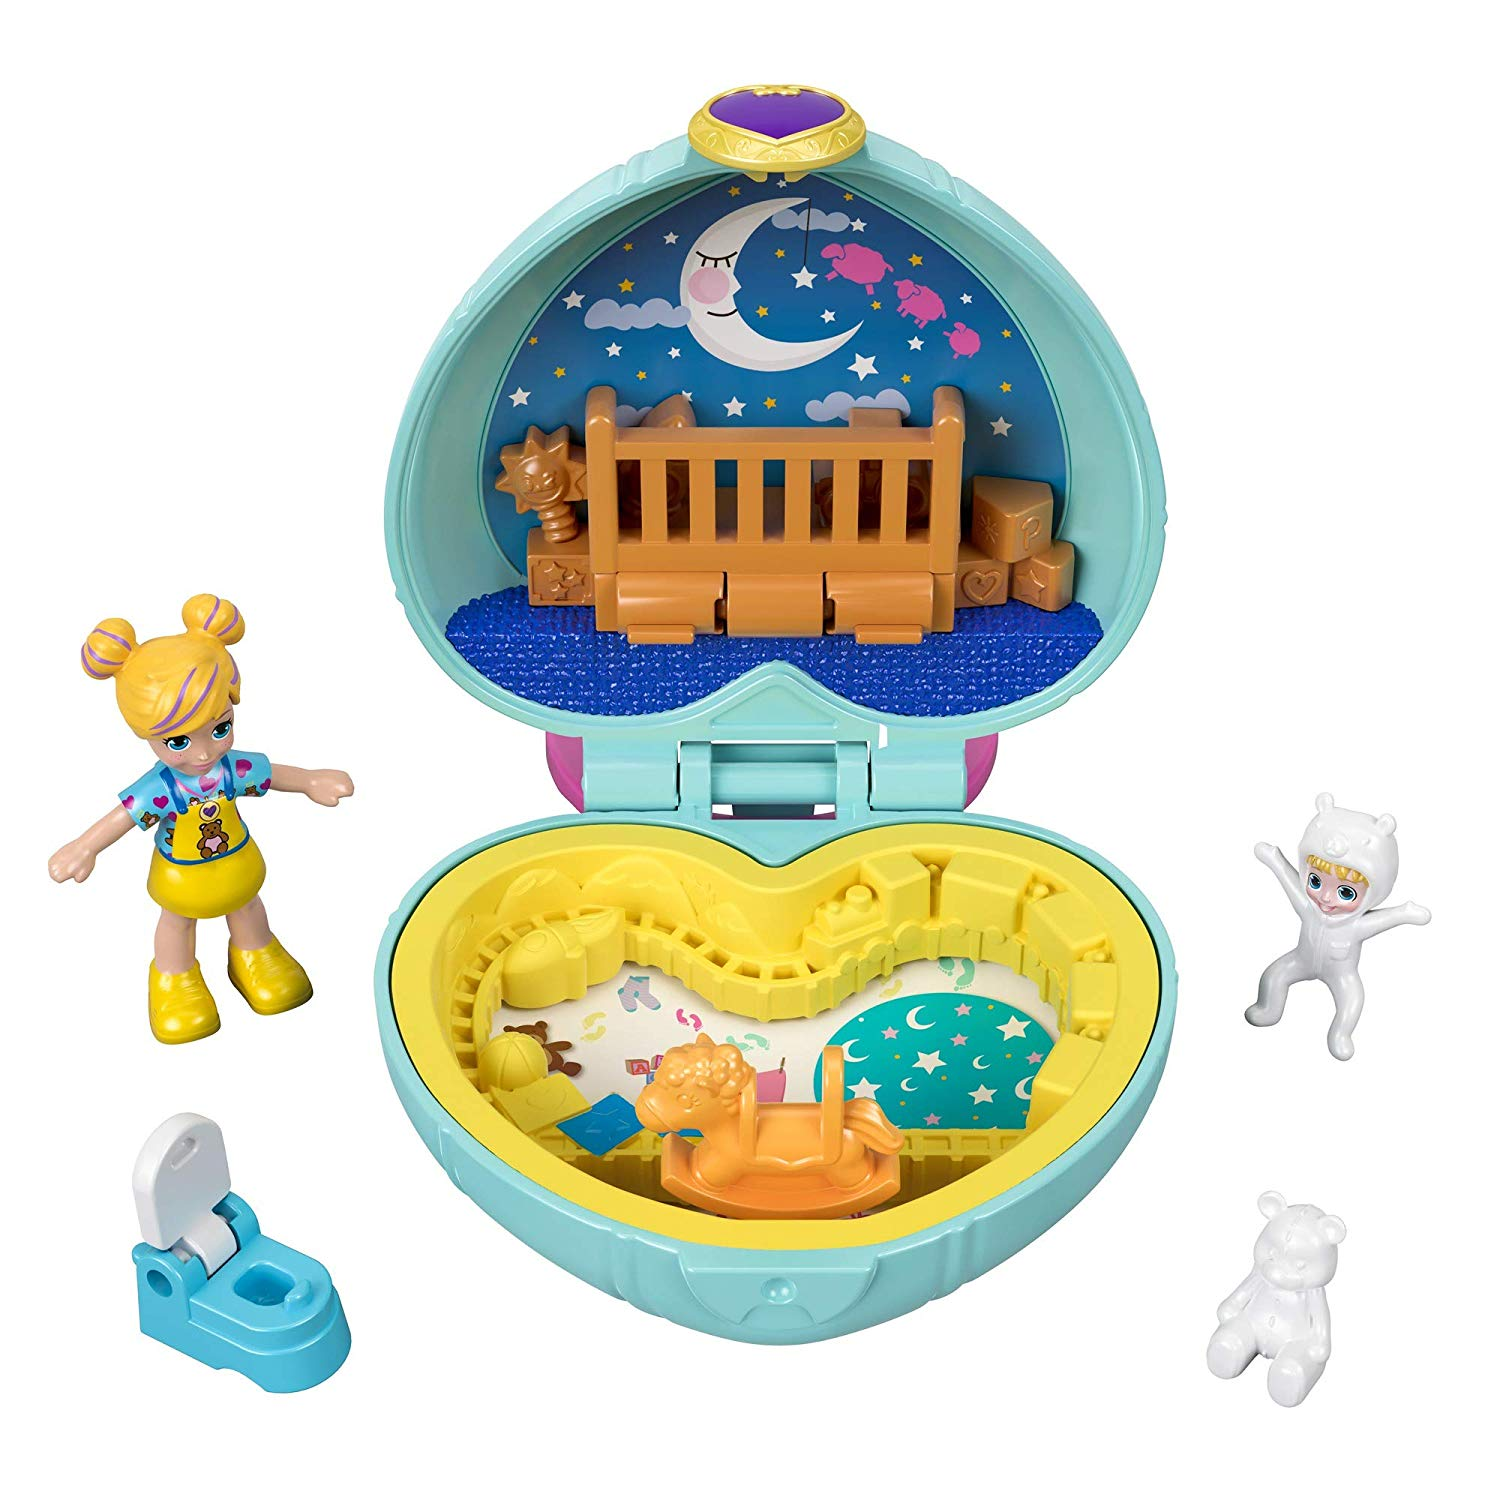 Polly Pocket GFM51 Teeny Tot Nursery Compact, Micro Dolls & Accessories Only £2.5